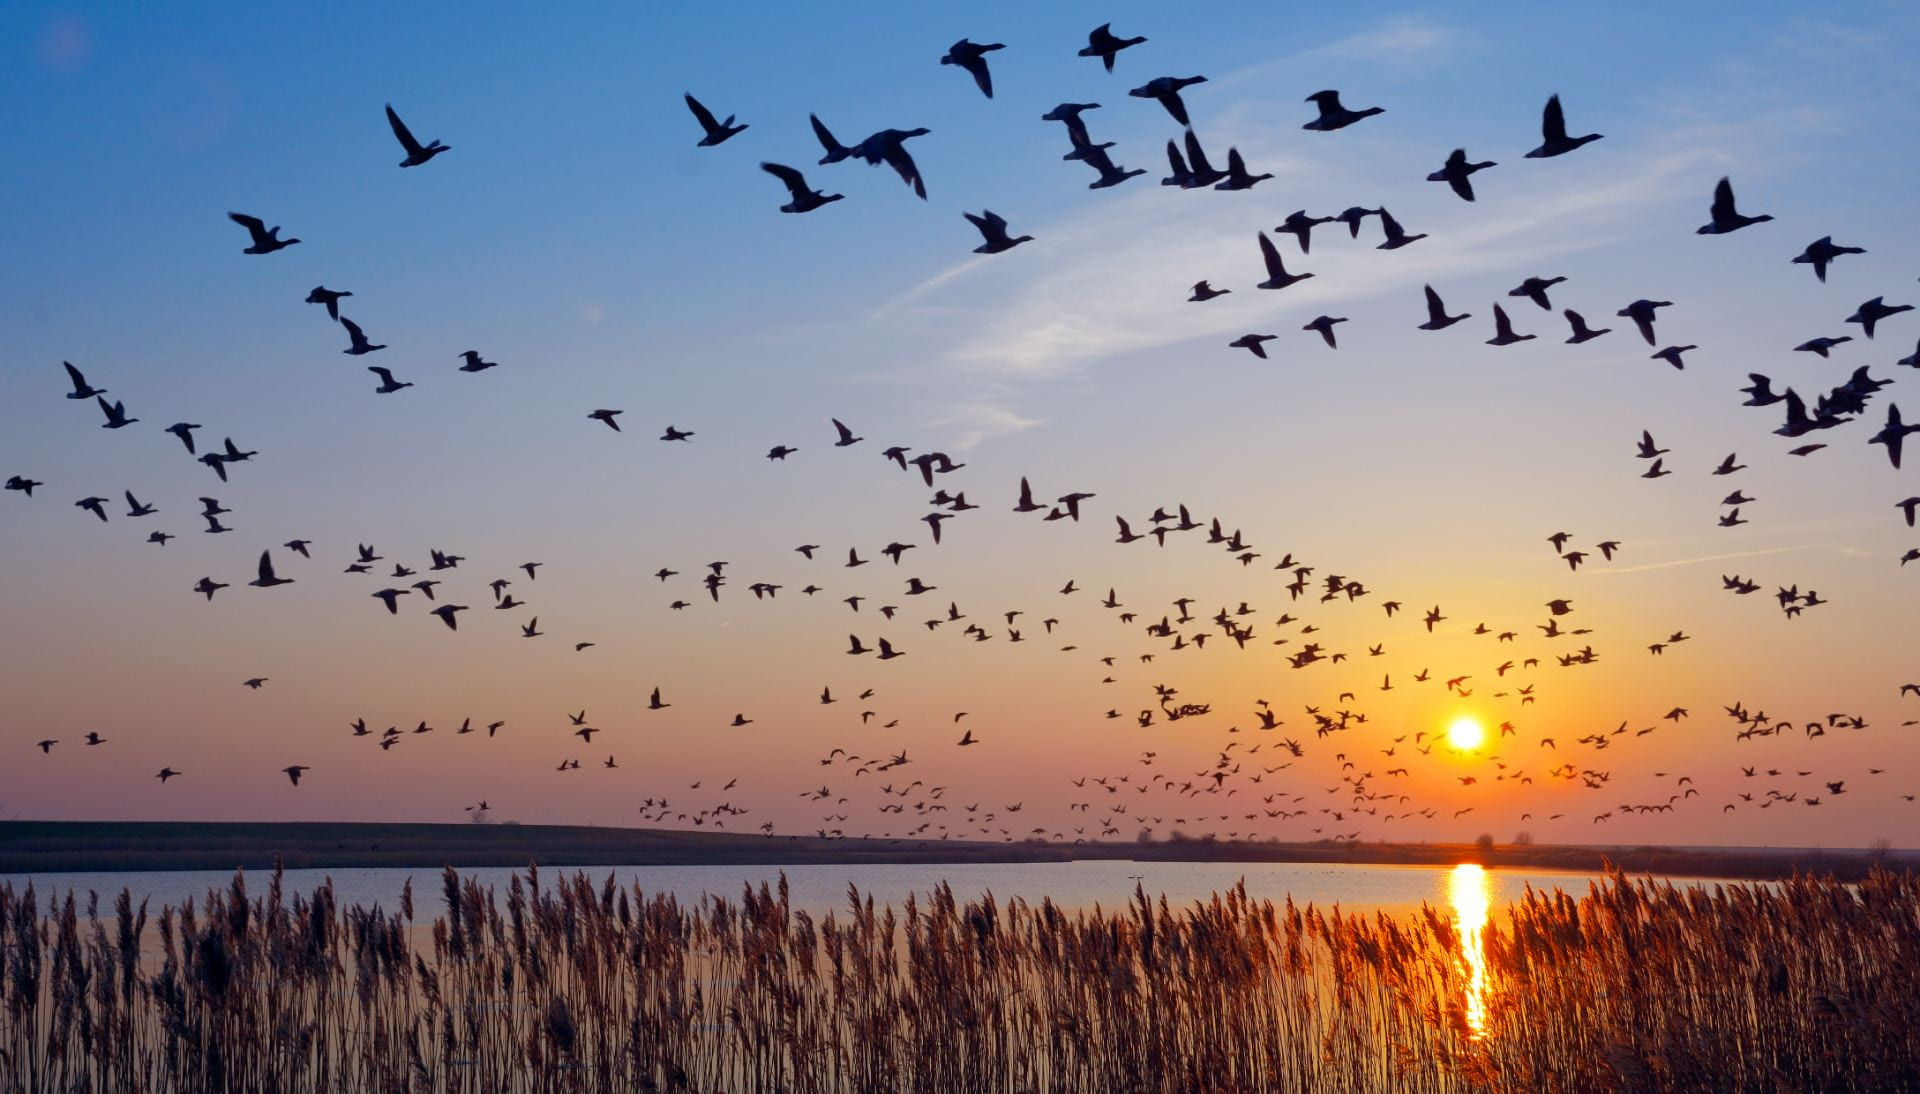 Why do birds migrate at night?